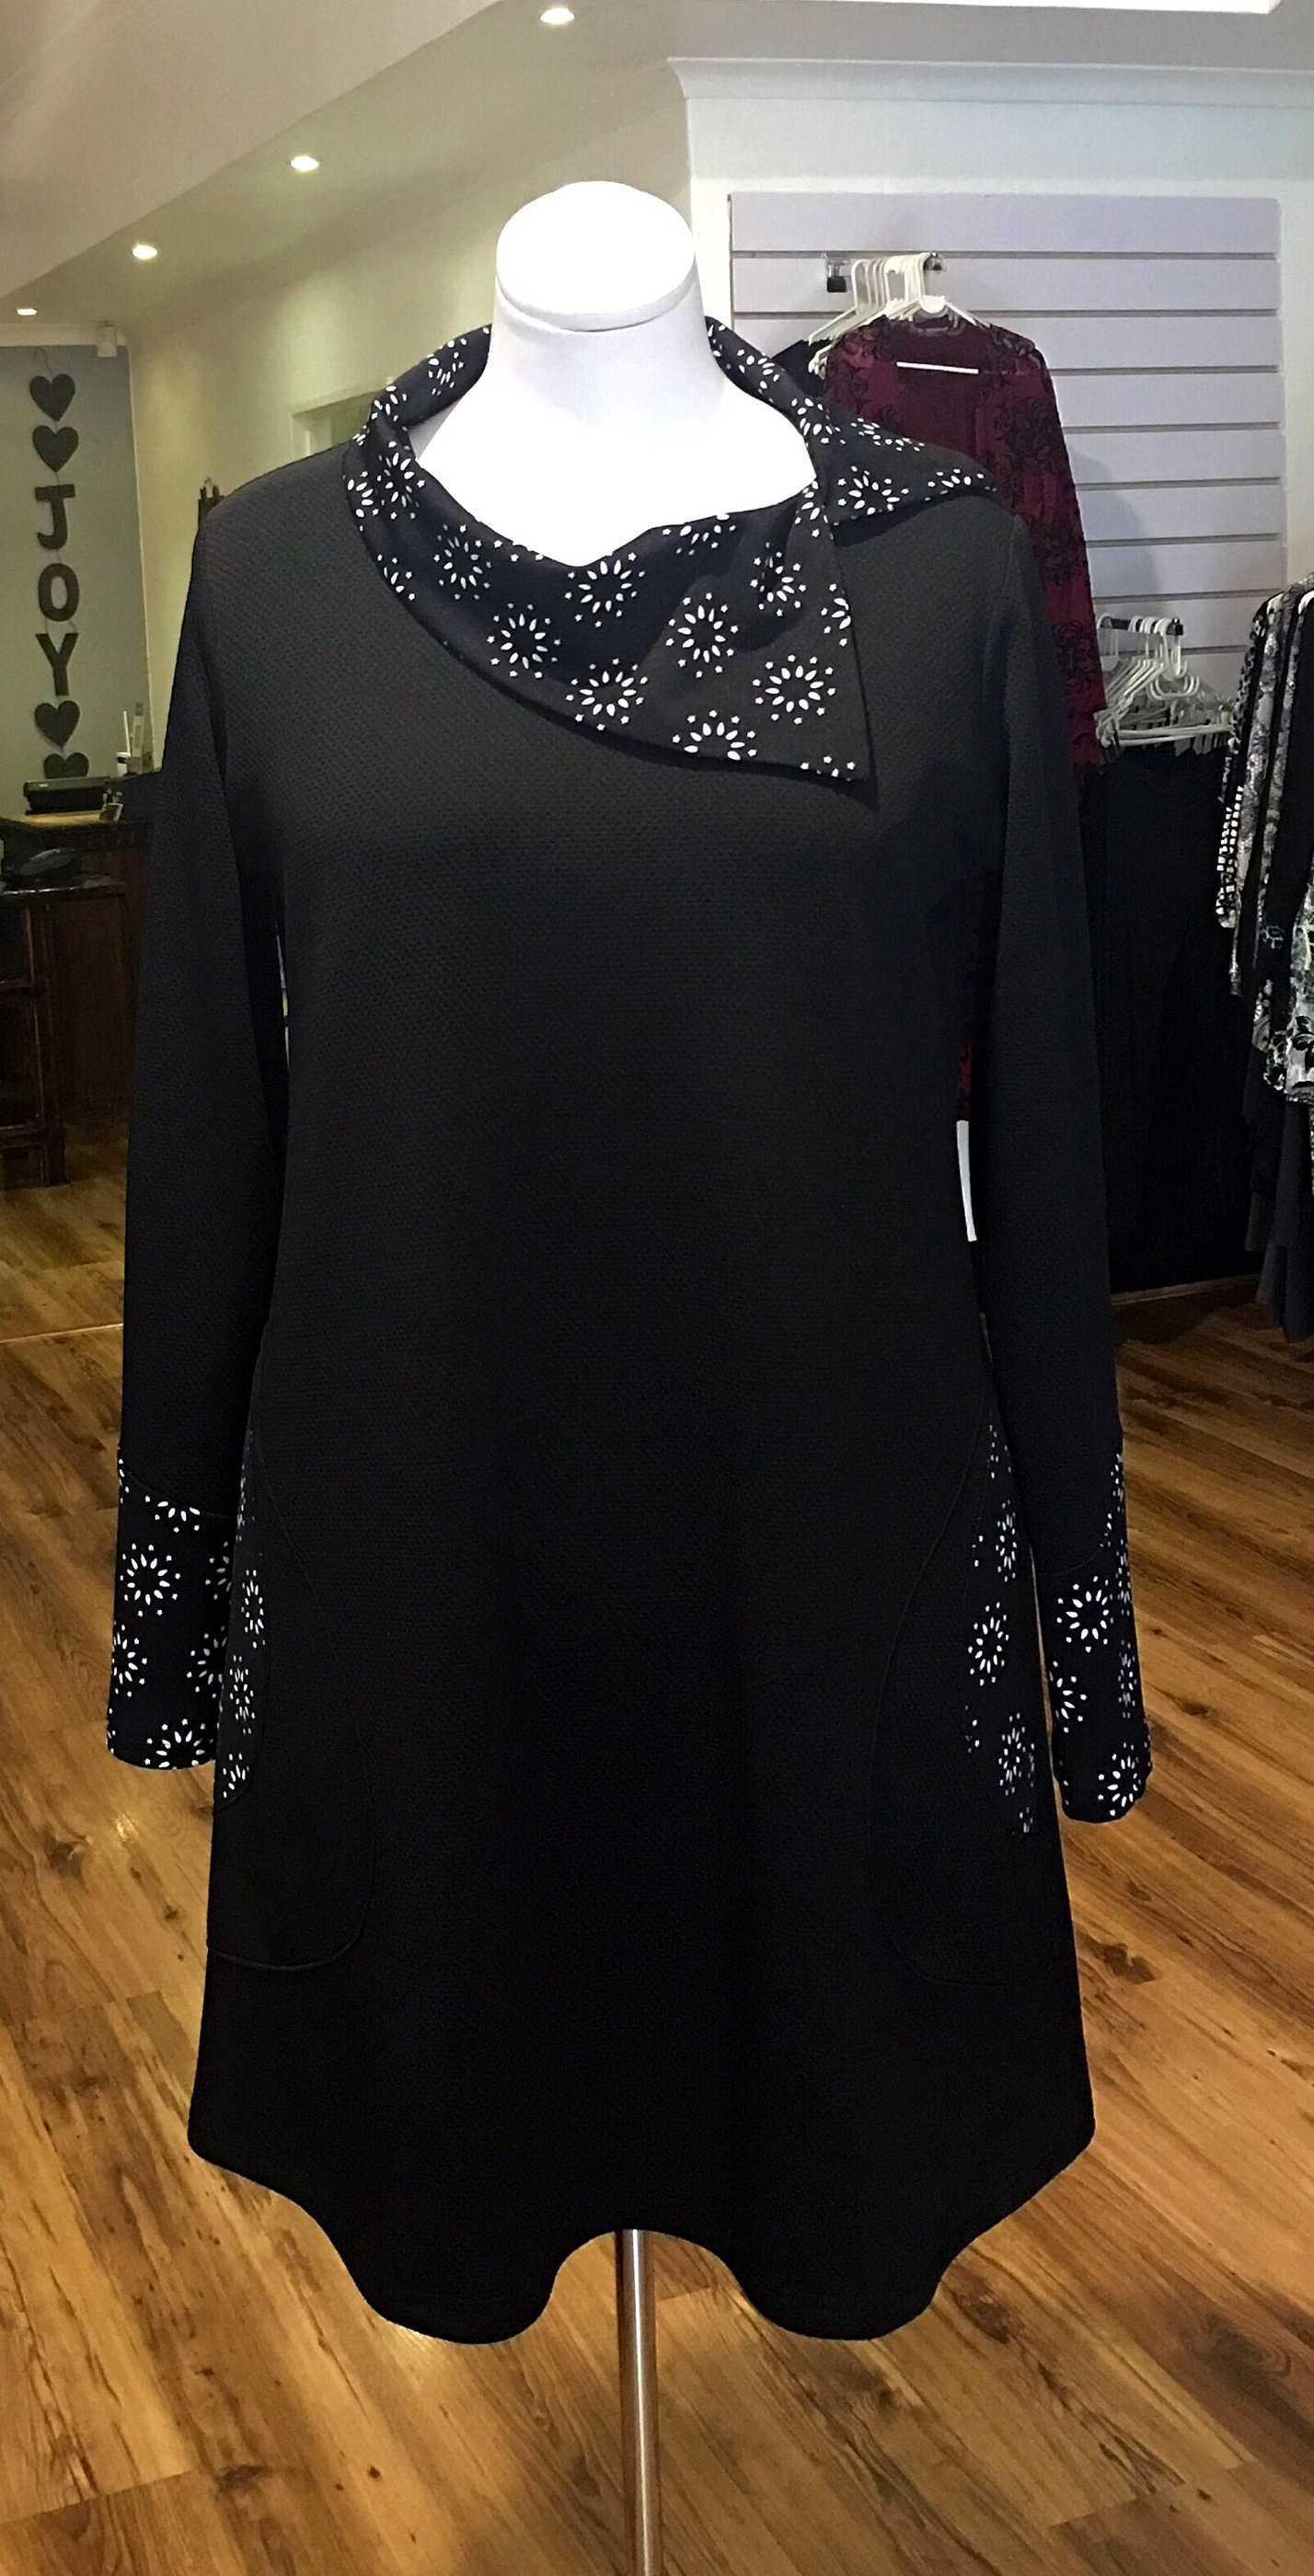 Winter Miracle shape top